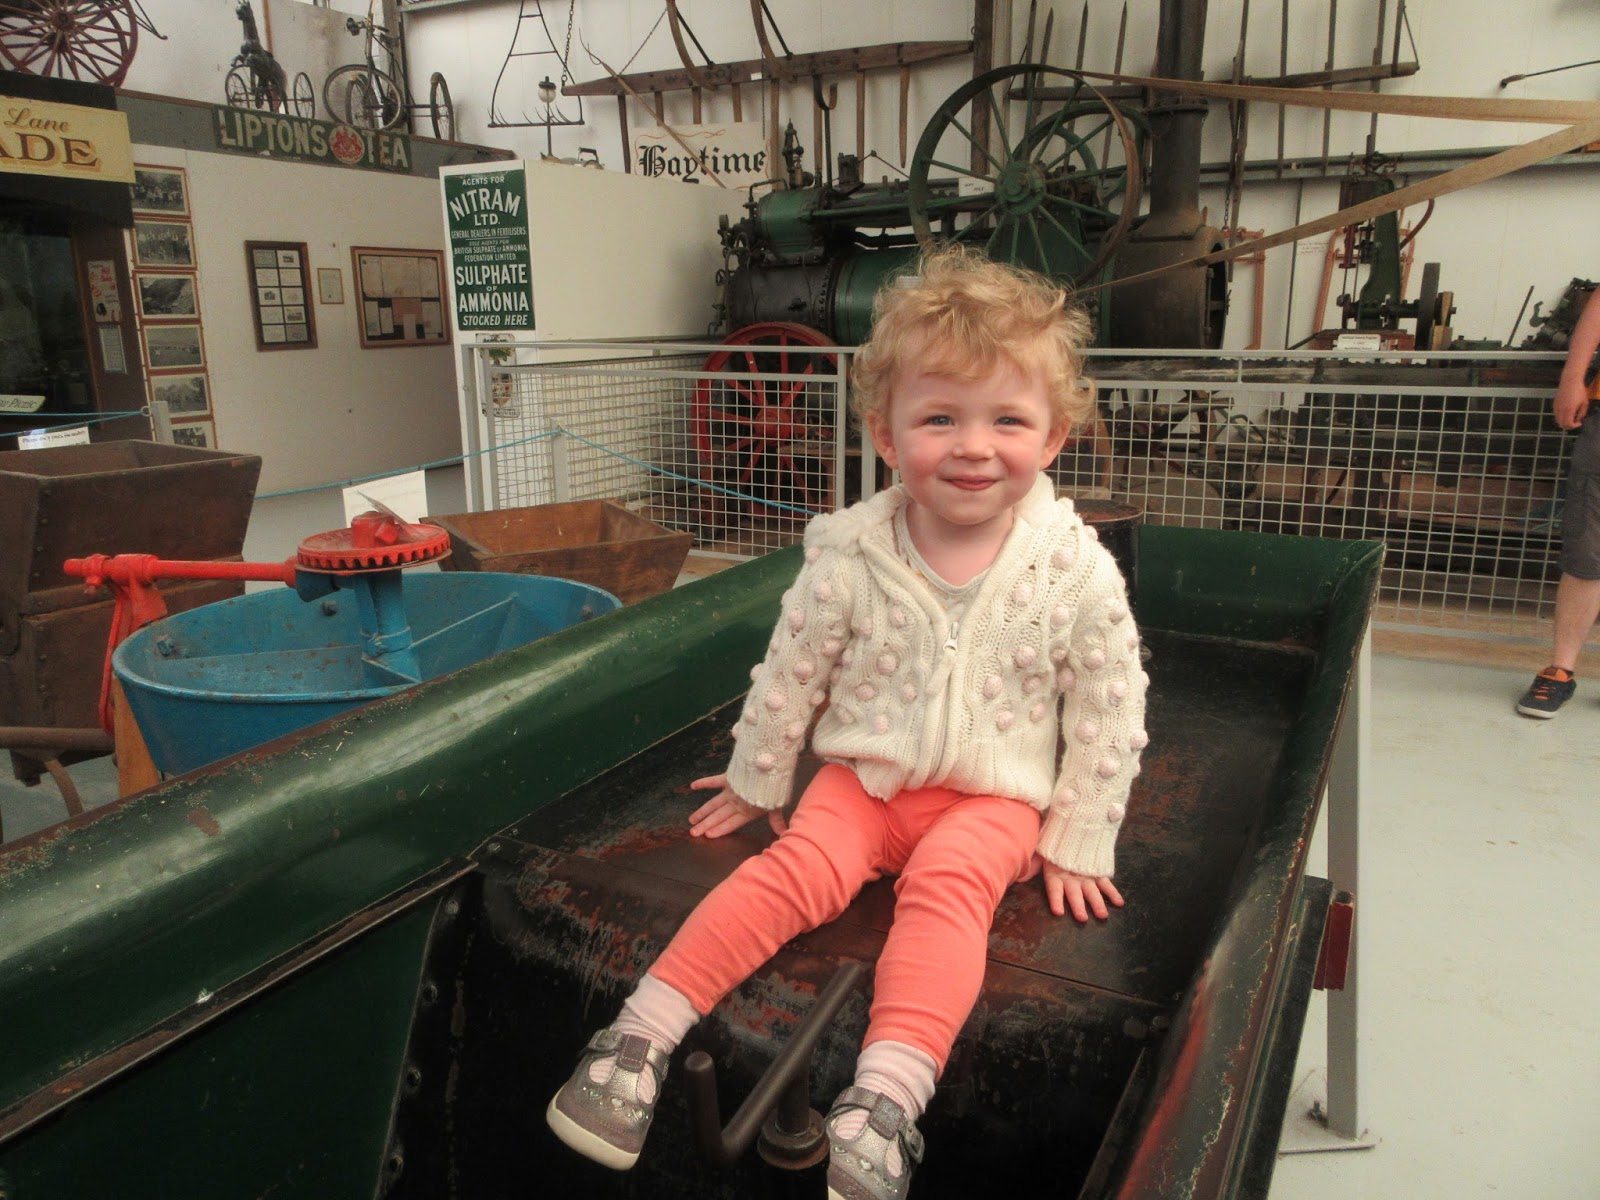 Annabelle playing on a miniature steam engine